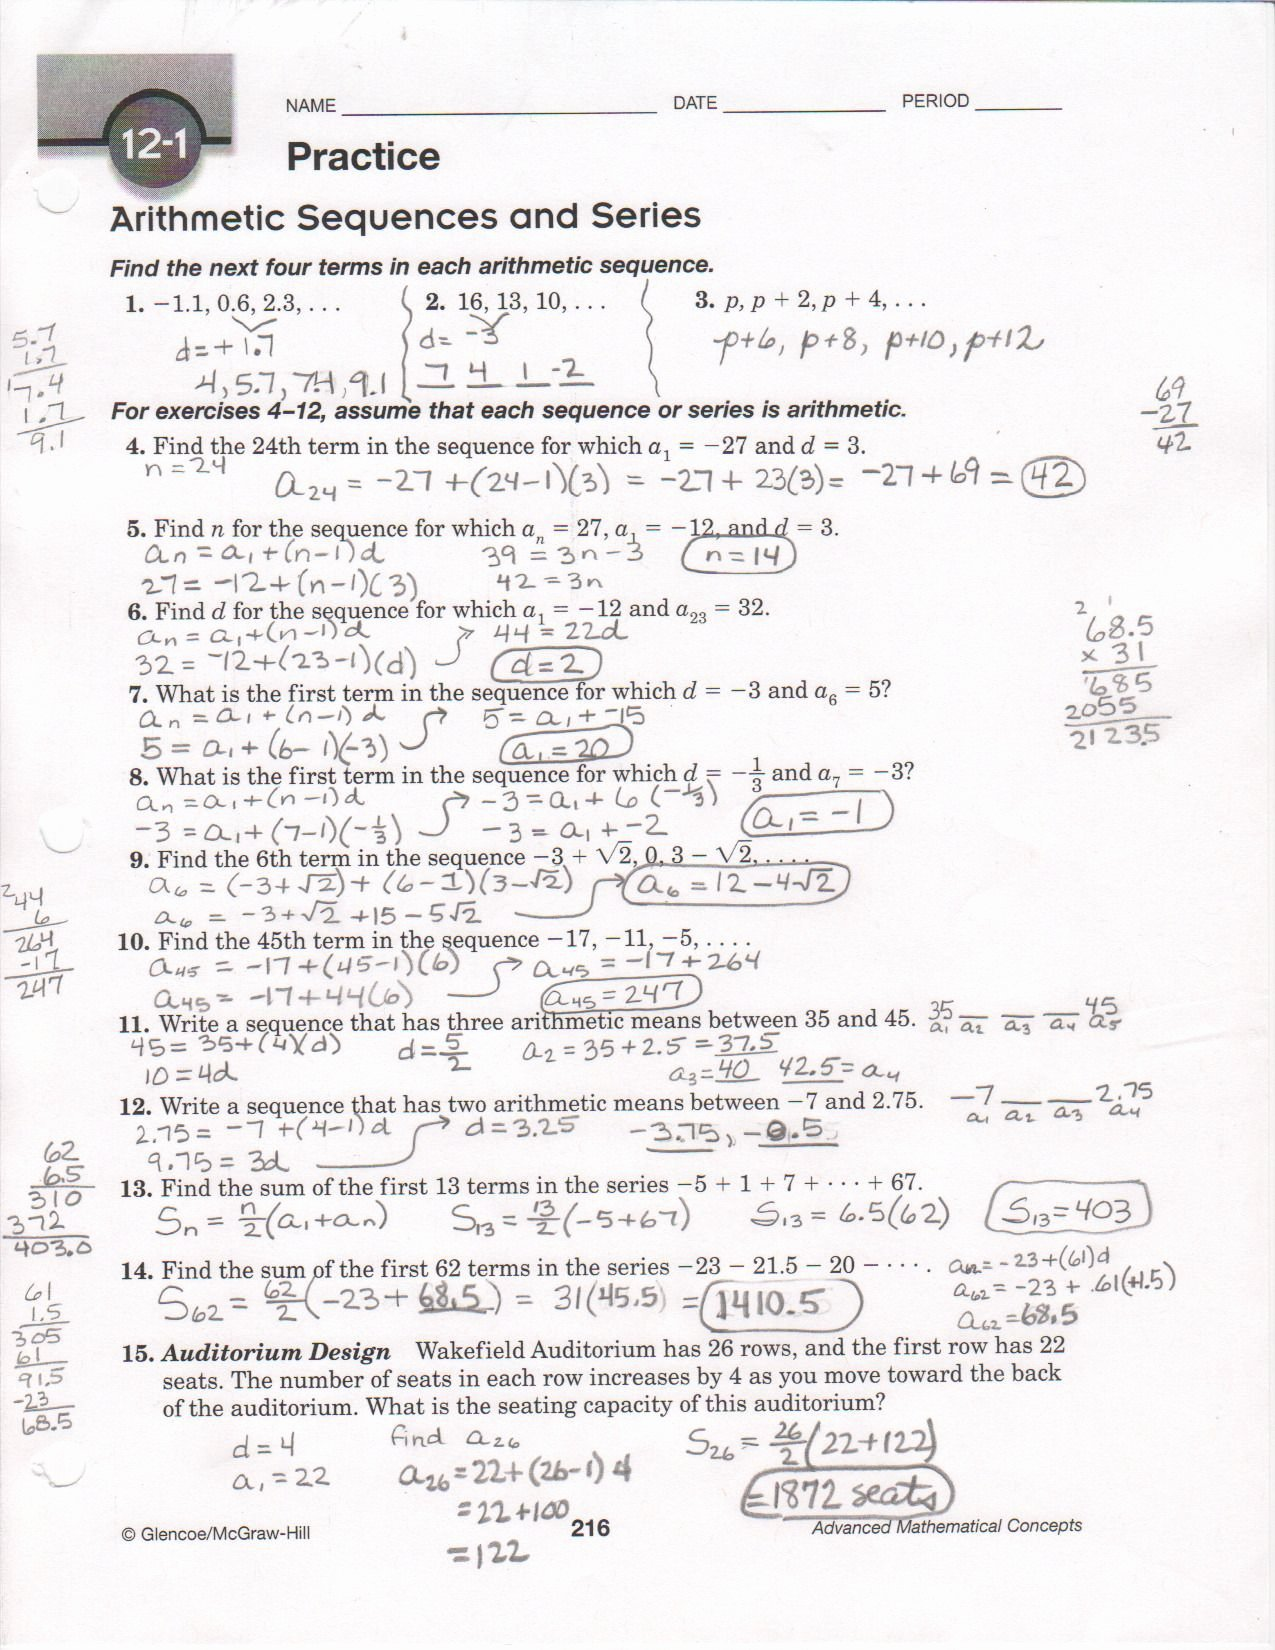 Arithmetic Sequence Worksheet with Answers Beautiful Arithmetic Sequences Worksheet 1 Answer Key